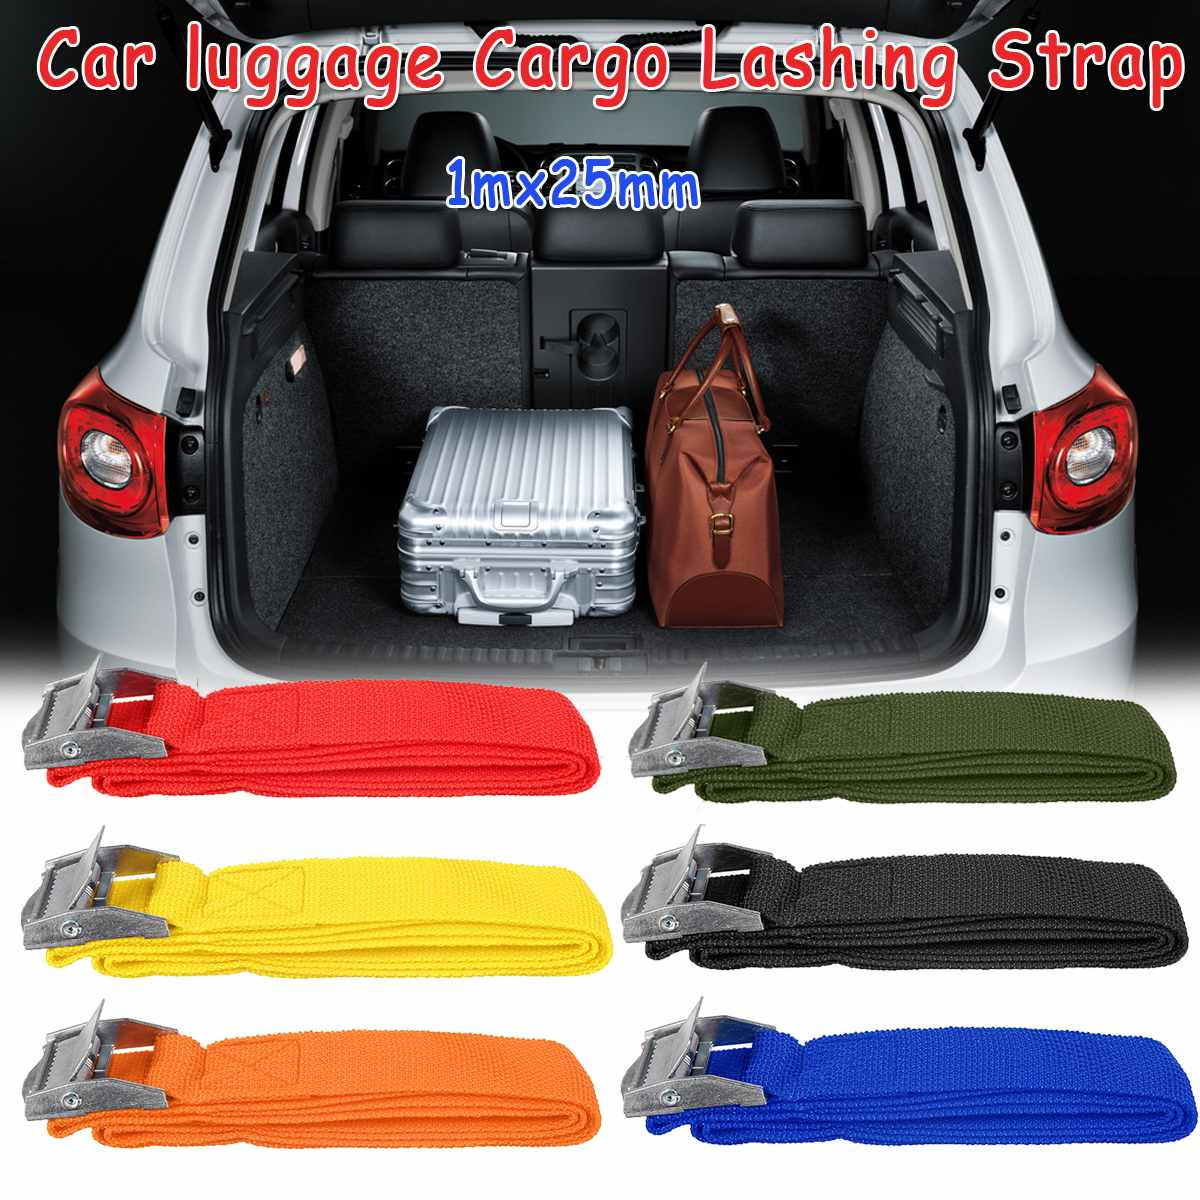 4PCS/set 1Mx25mm Car Tension Rope Tie Down Strap Strong Ratchet Belt Car Luggage Bag Cargo Lashing Strap Zinc Alloy Zinc Nylon